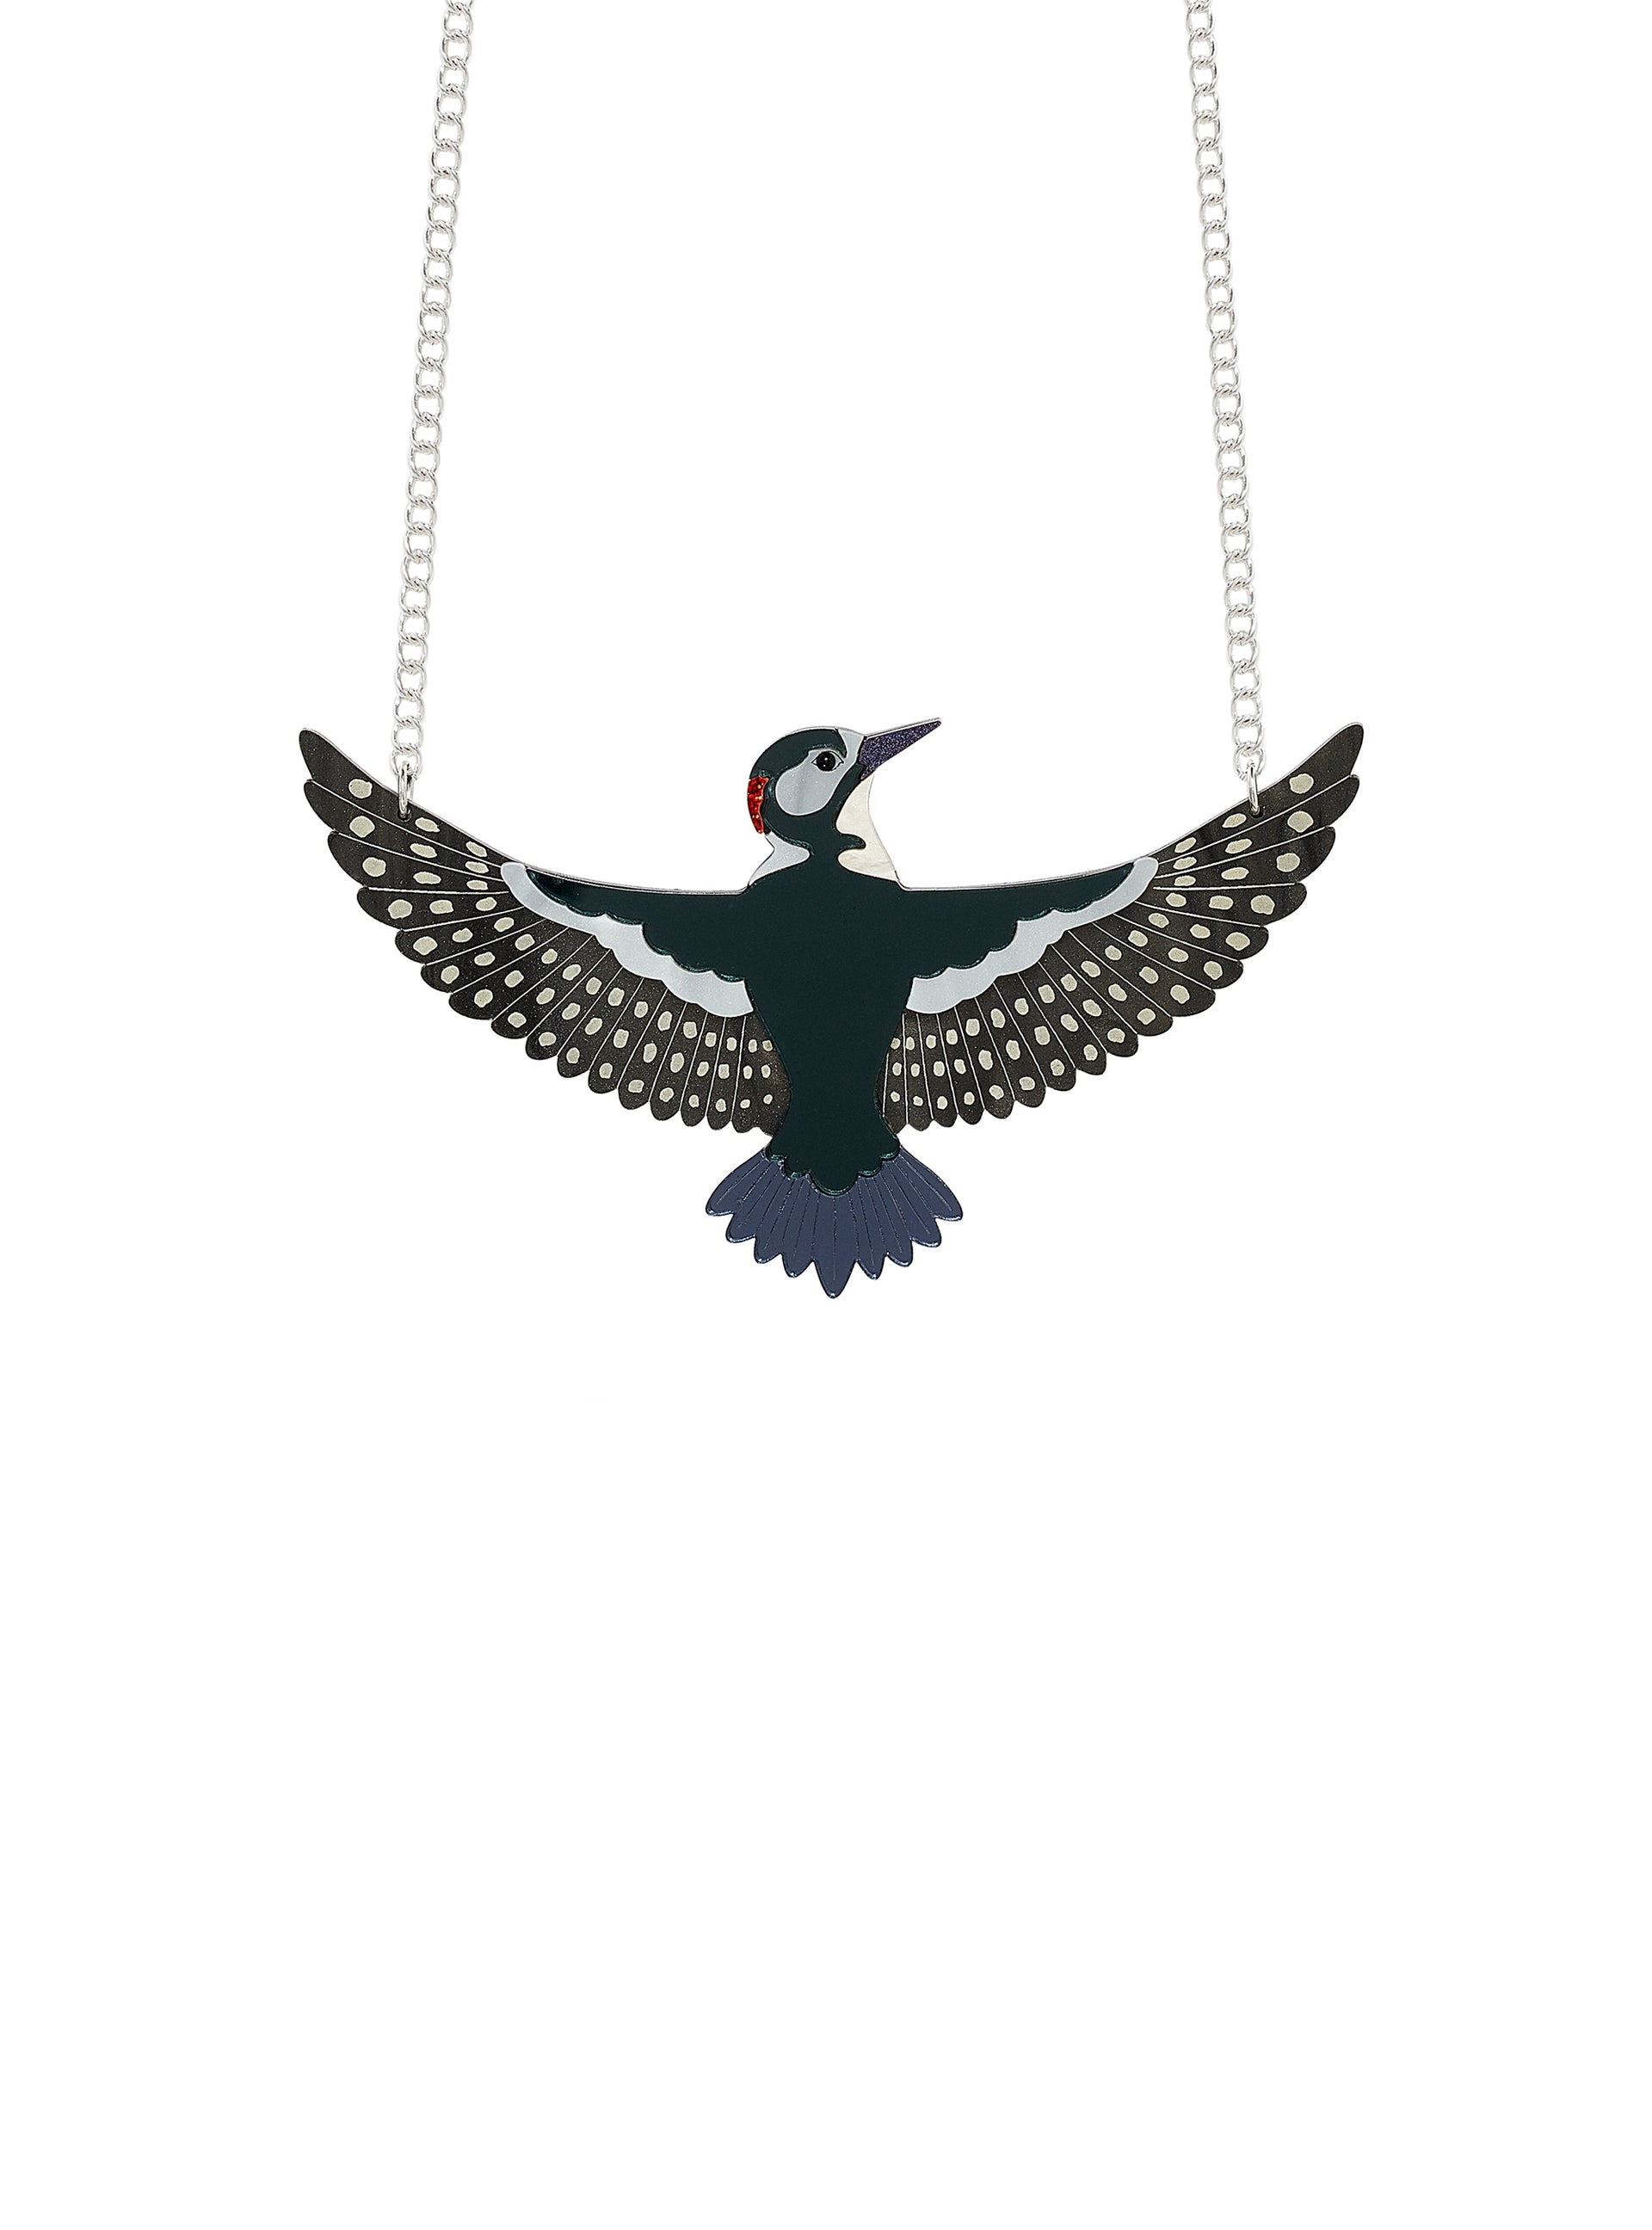 Great Spotted Woodpecker Necklace